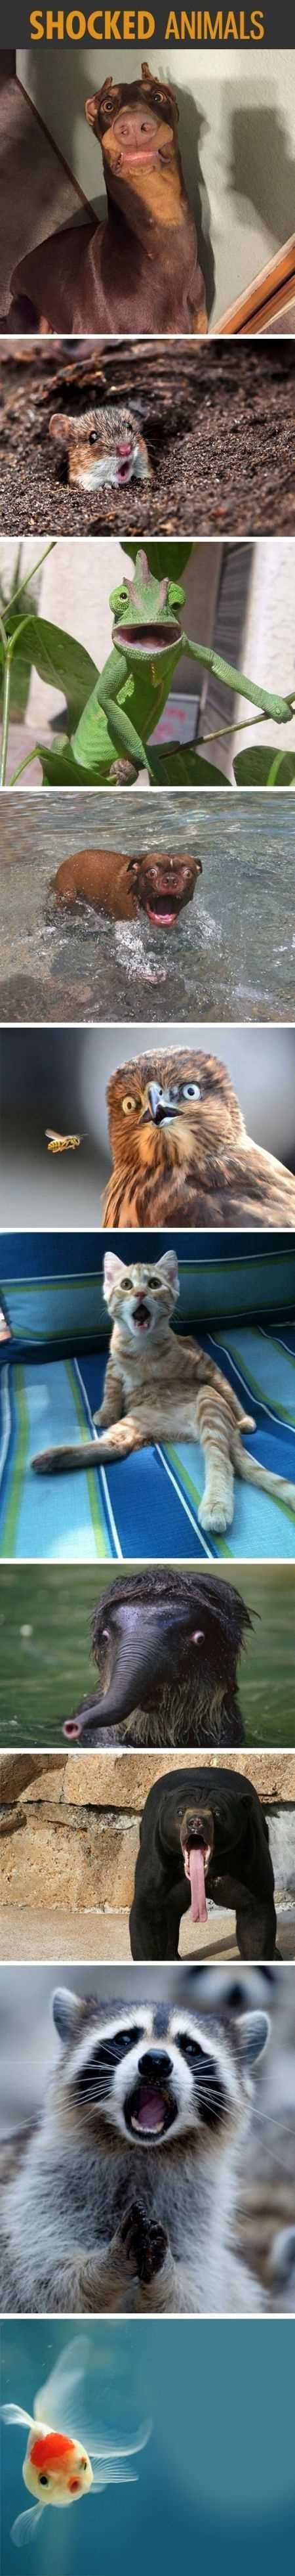 35 Great Funny Animals Pictures #funnyanimalpictures